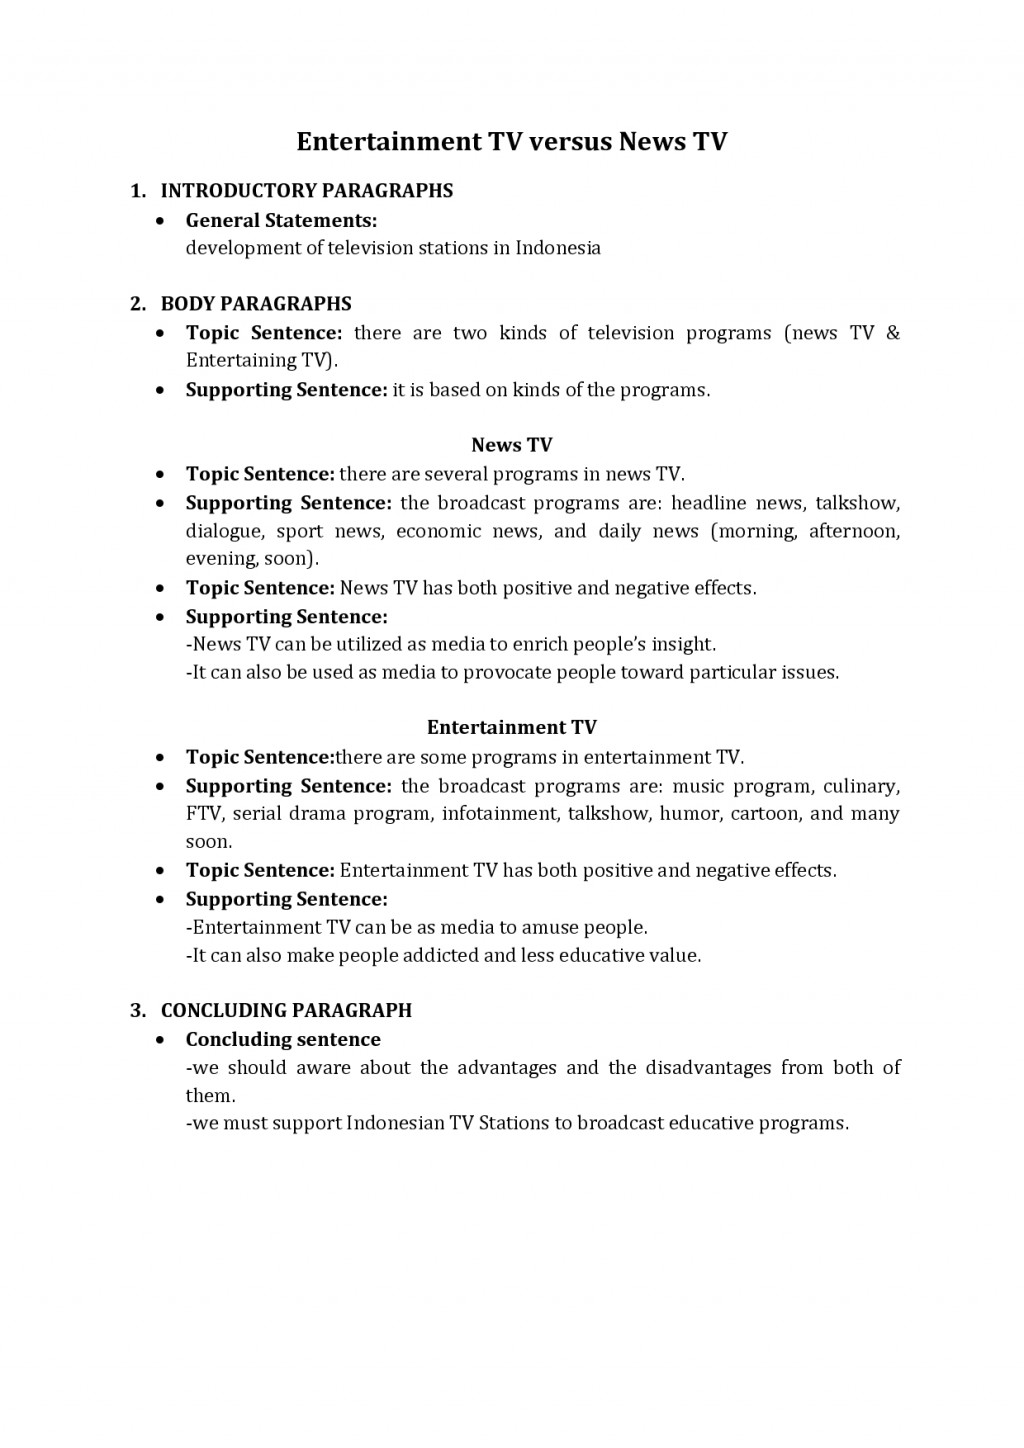 011 Outline Essay Colleges And Search On Pinterest In Format Fascinating About Immigration Tok Structure Definition Large